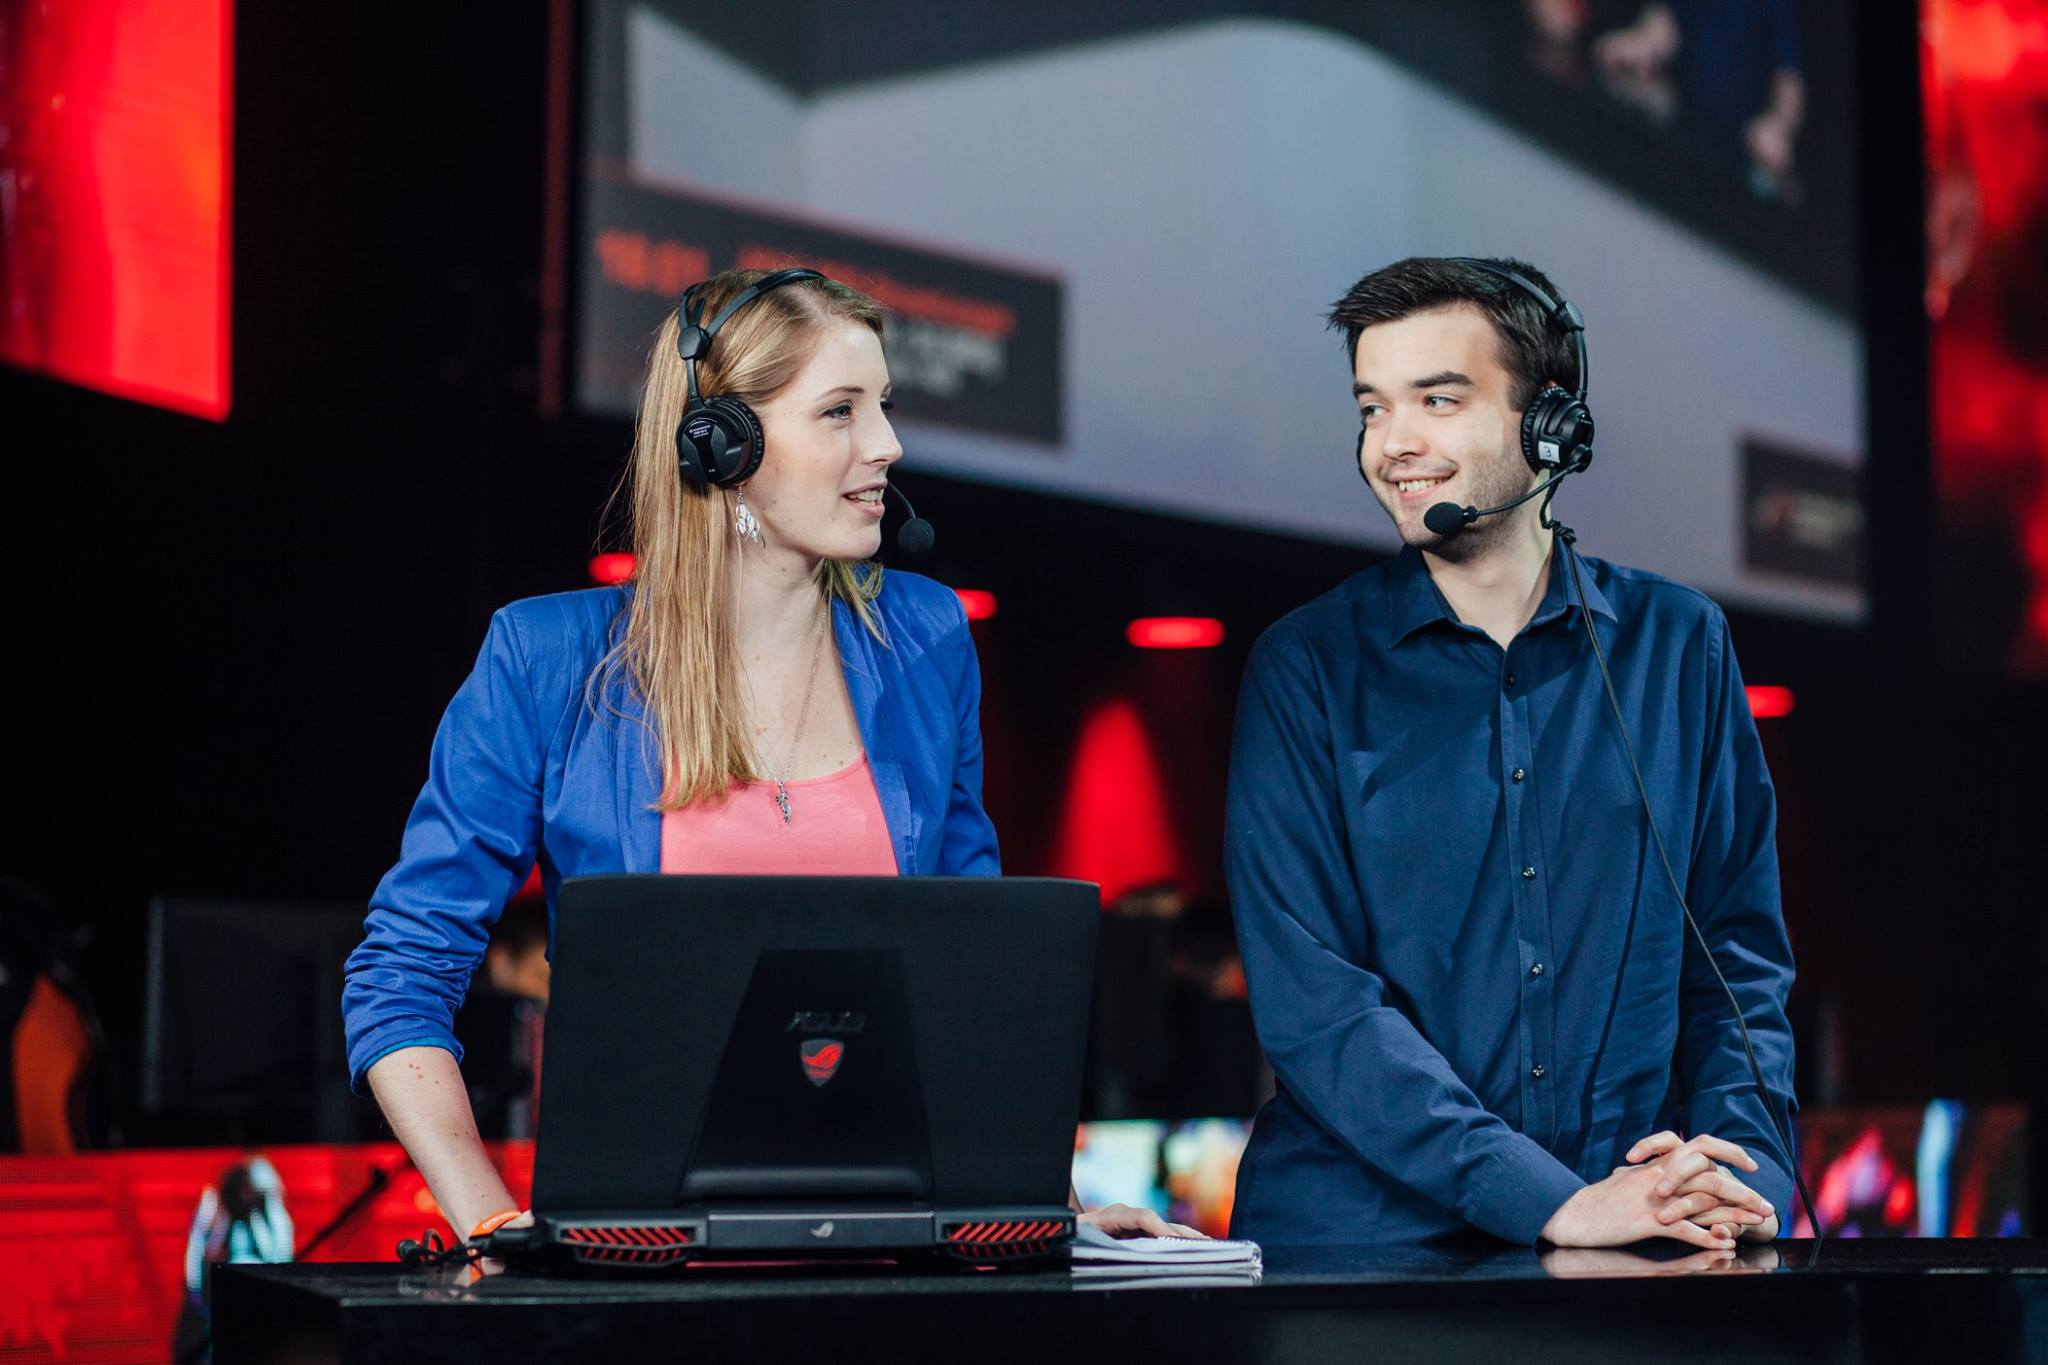 Sheever Host DreamLeague Esports E-sports Dota 2 DreamHack